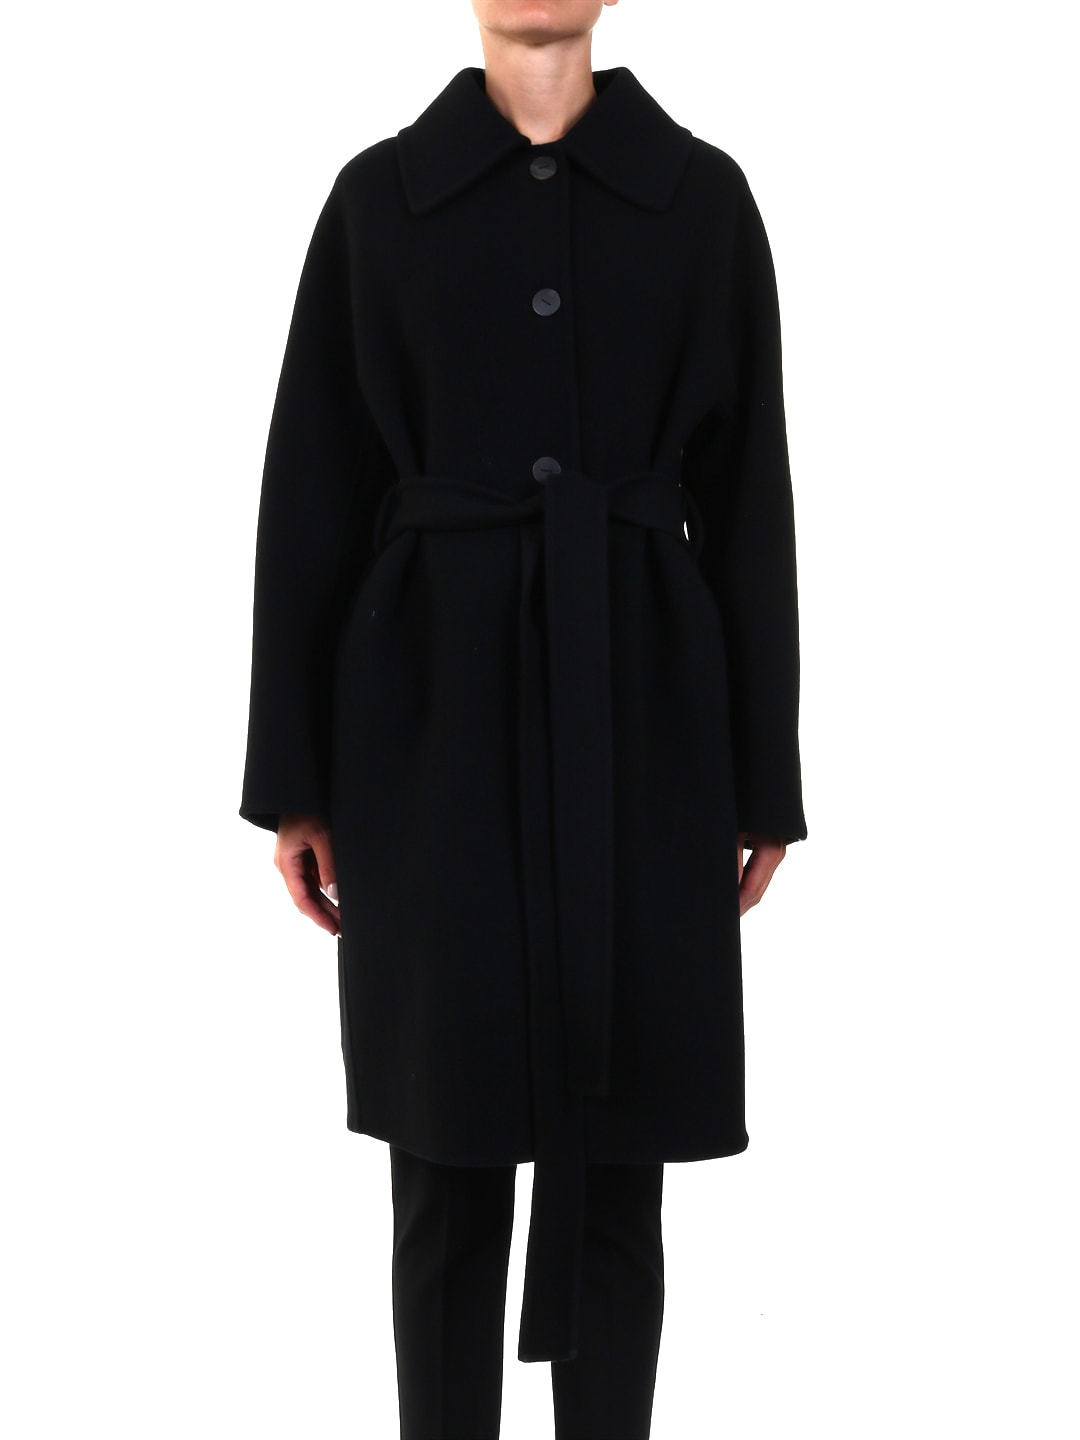 LOEWE BELTED COAT IN WOOL AND CASHMERE